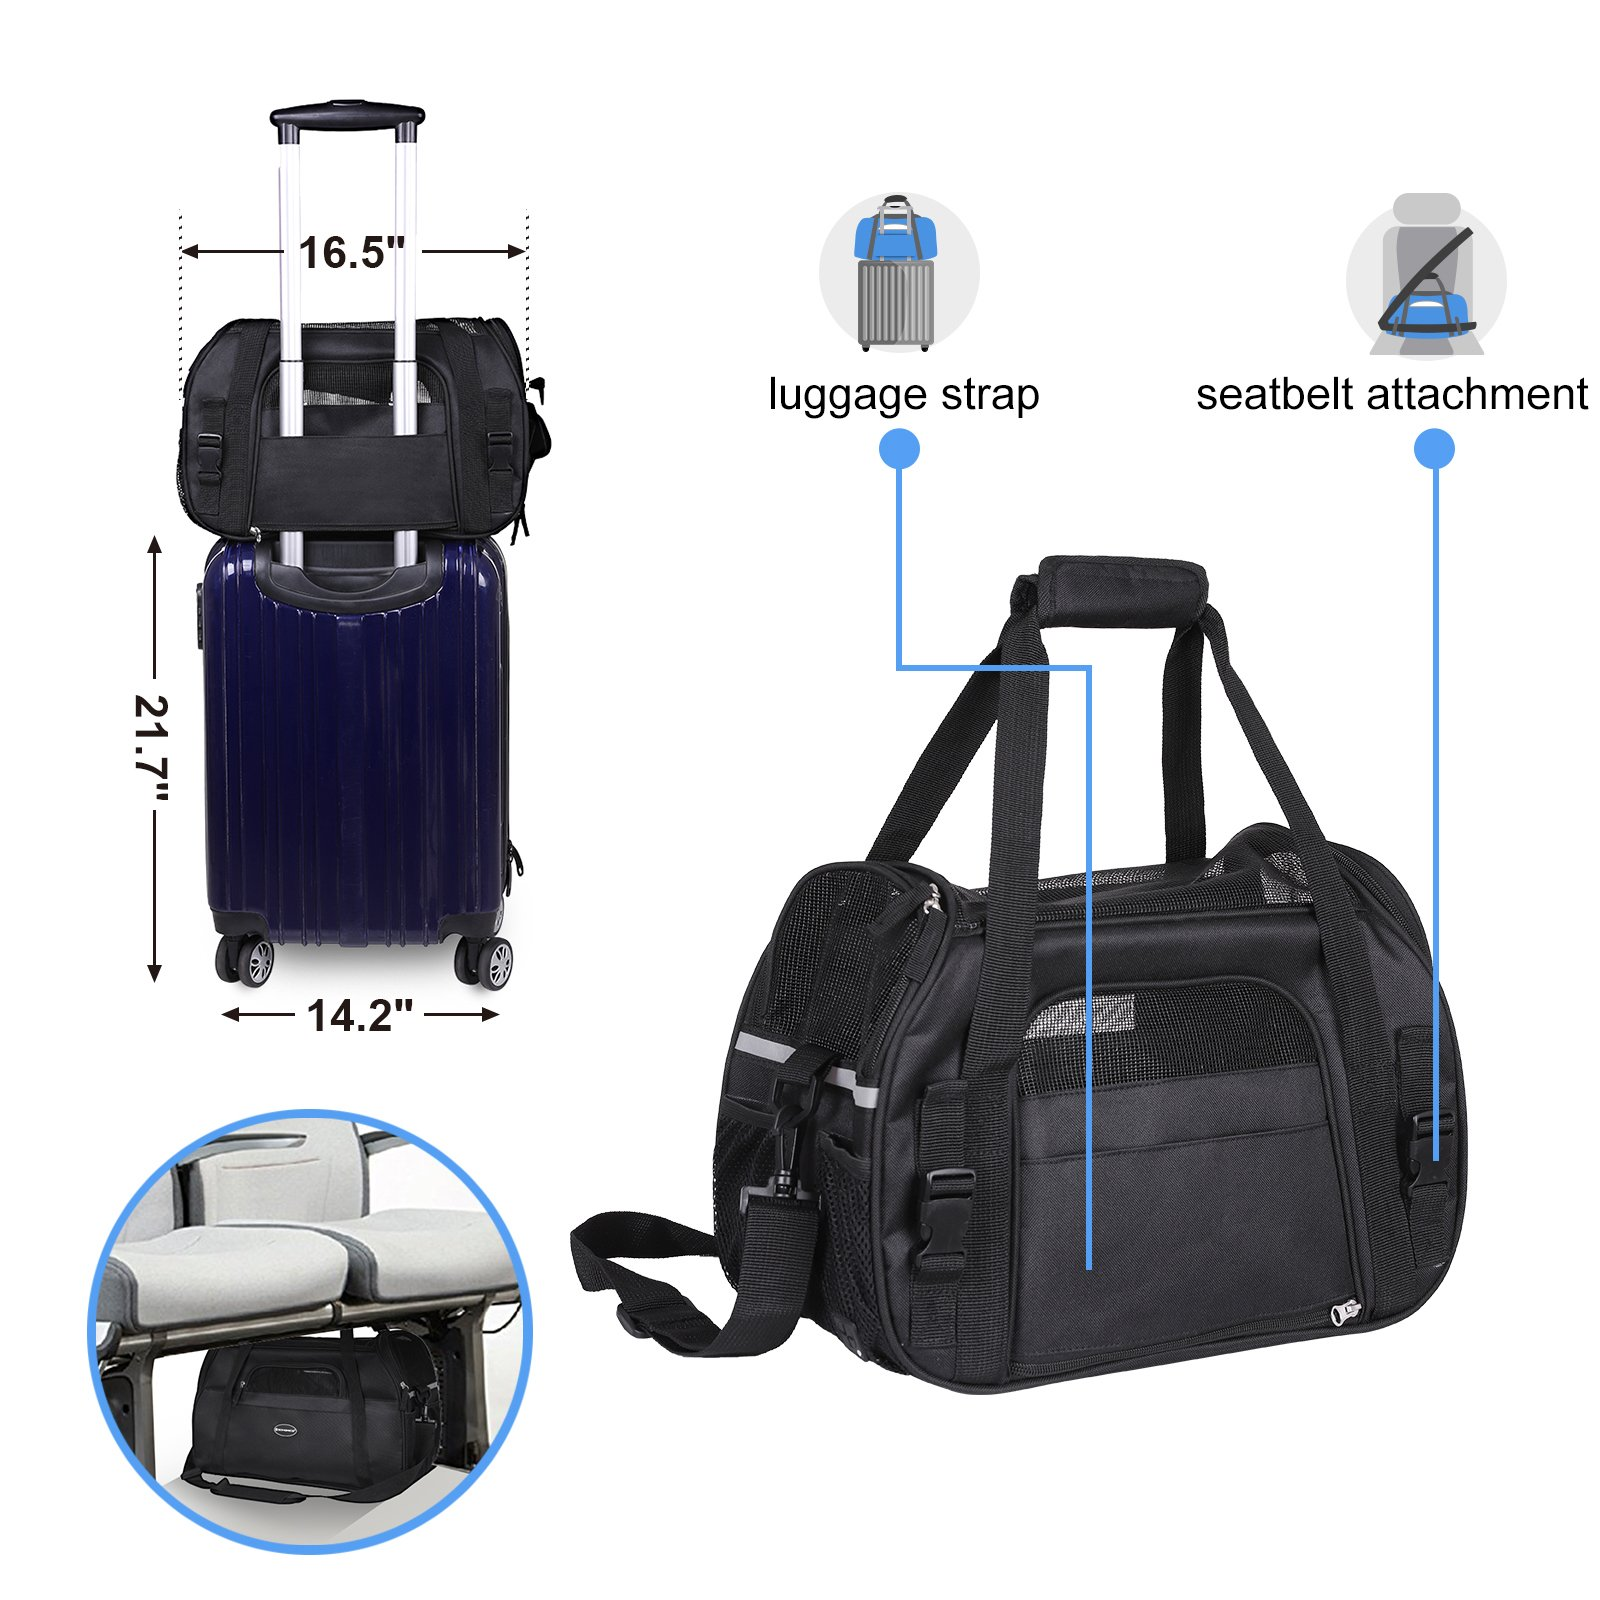 SONGMICS Foldable Pet Carrier, Soft-Sided, for Travel, Airline Approved, Small Dog/Cat Bags with Shoulder Strap, Garbage Bag Included UPDC42BK by SONGMICS (Image #4)